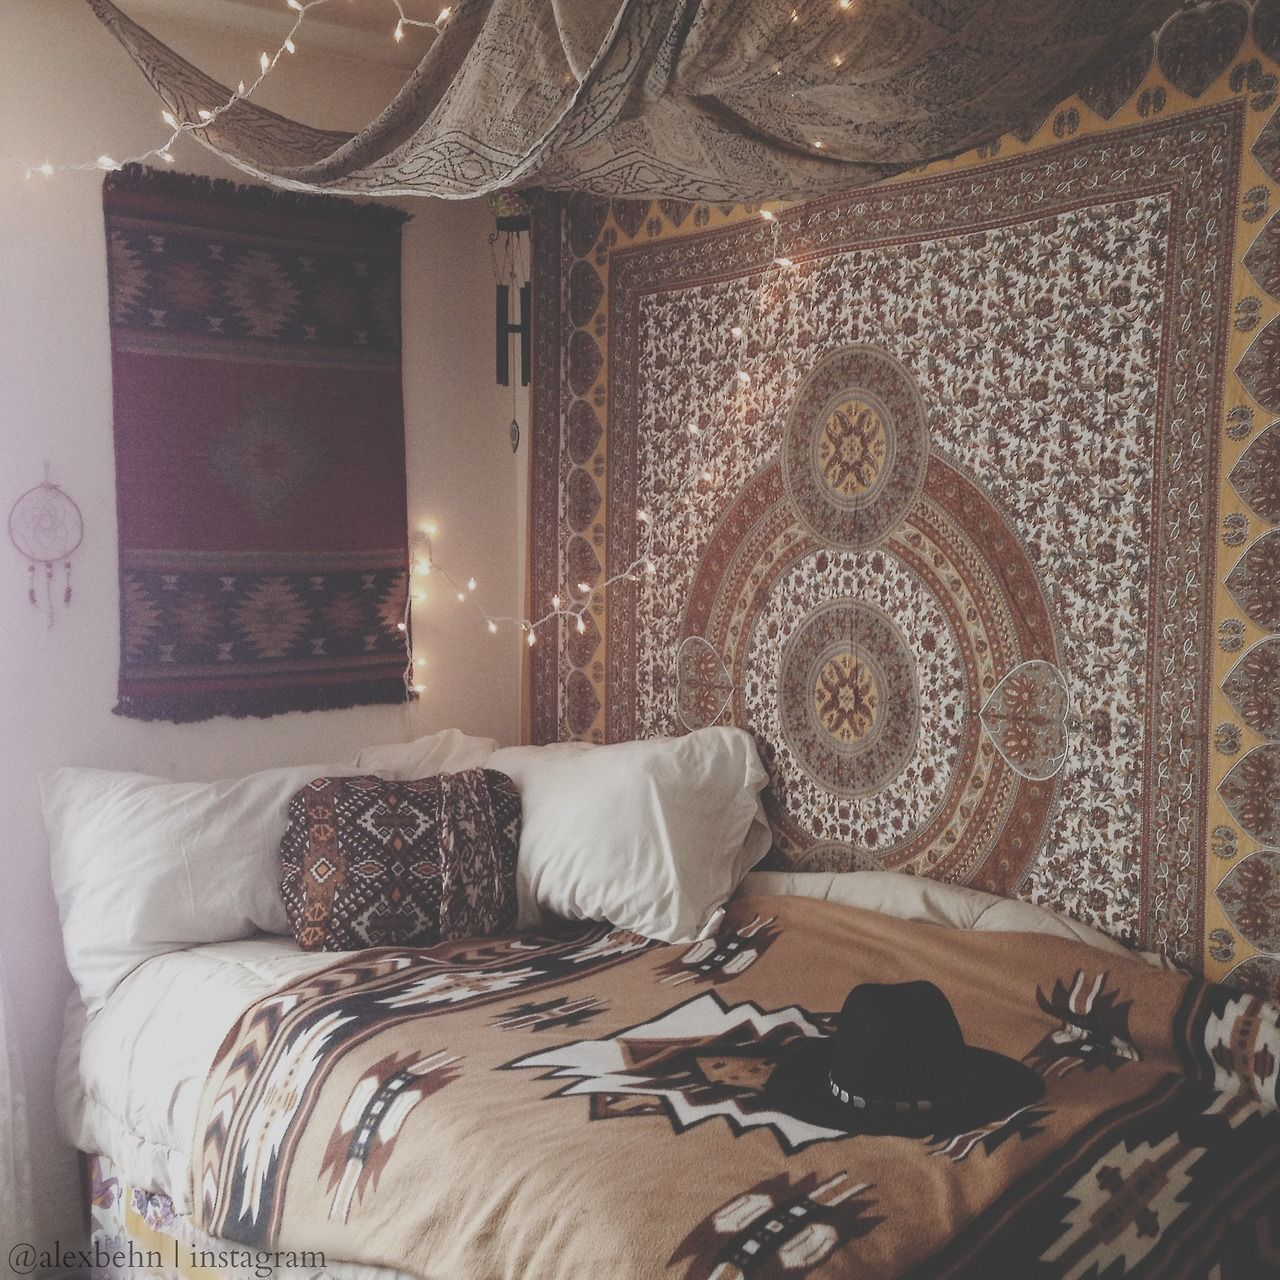 Hipster Bedroom Decorating Ideas this reminds me of brown hall where i lived my junior year in